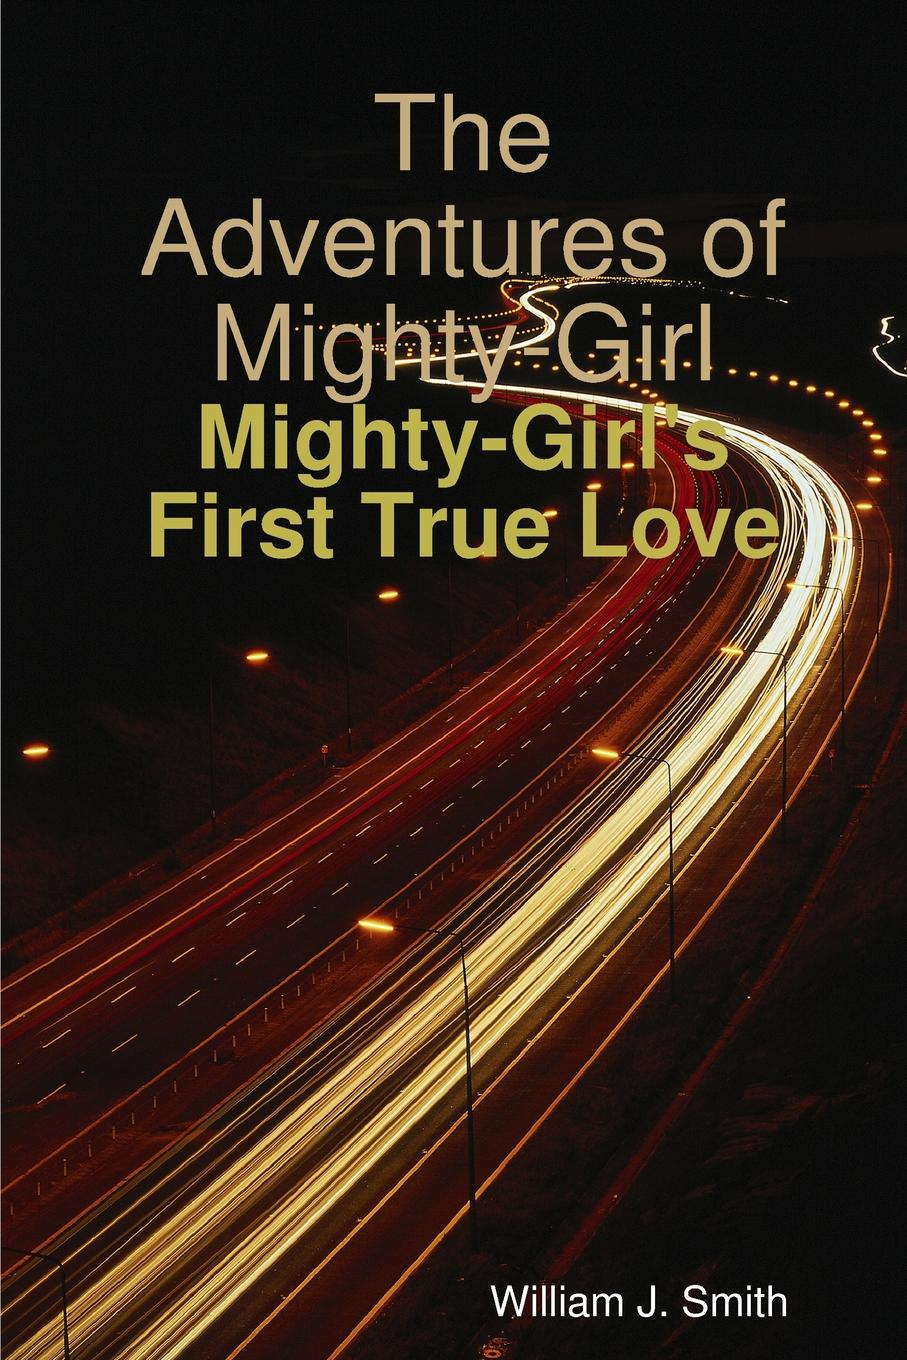 William J. Smith The Adventures of Mighty-Girl. Mighty-Girl.s First True Love